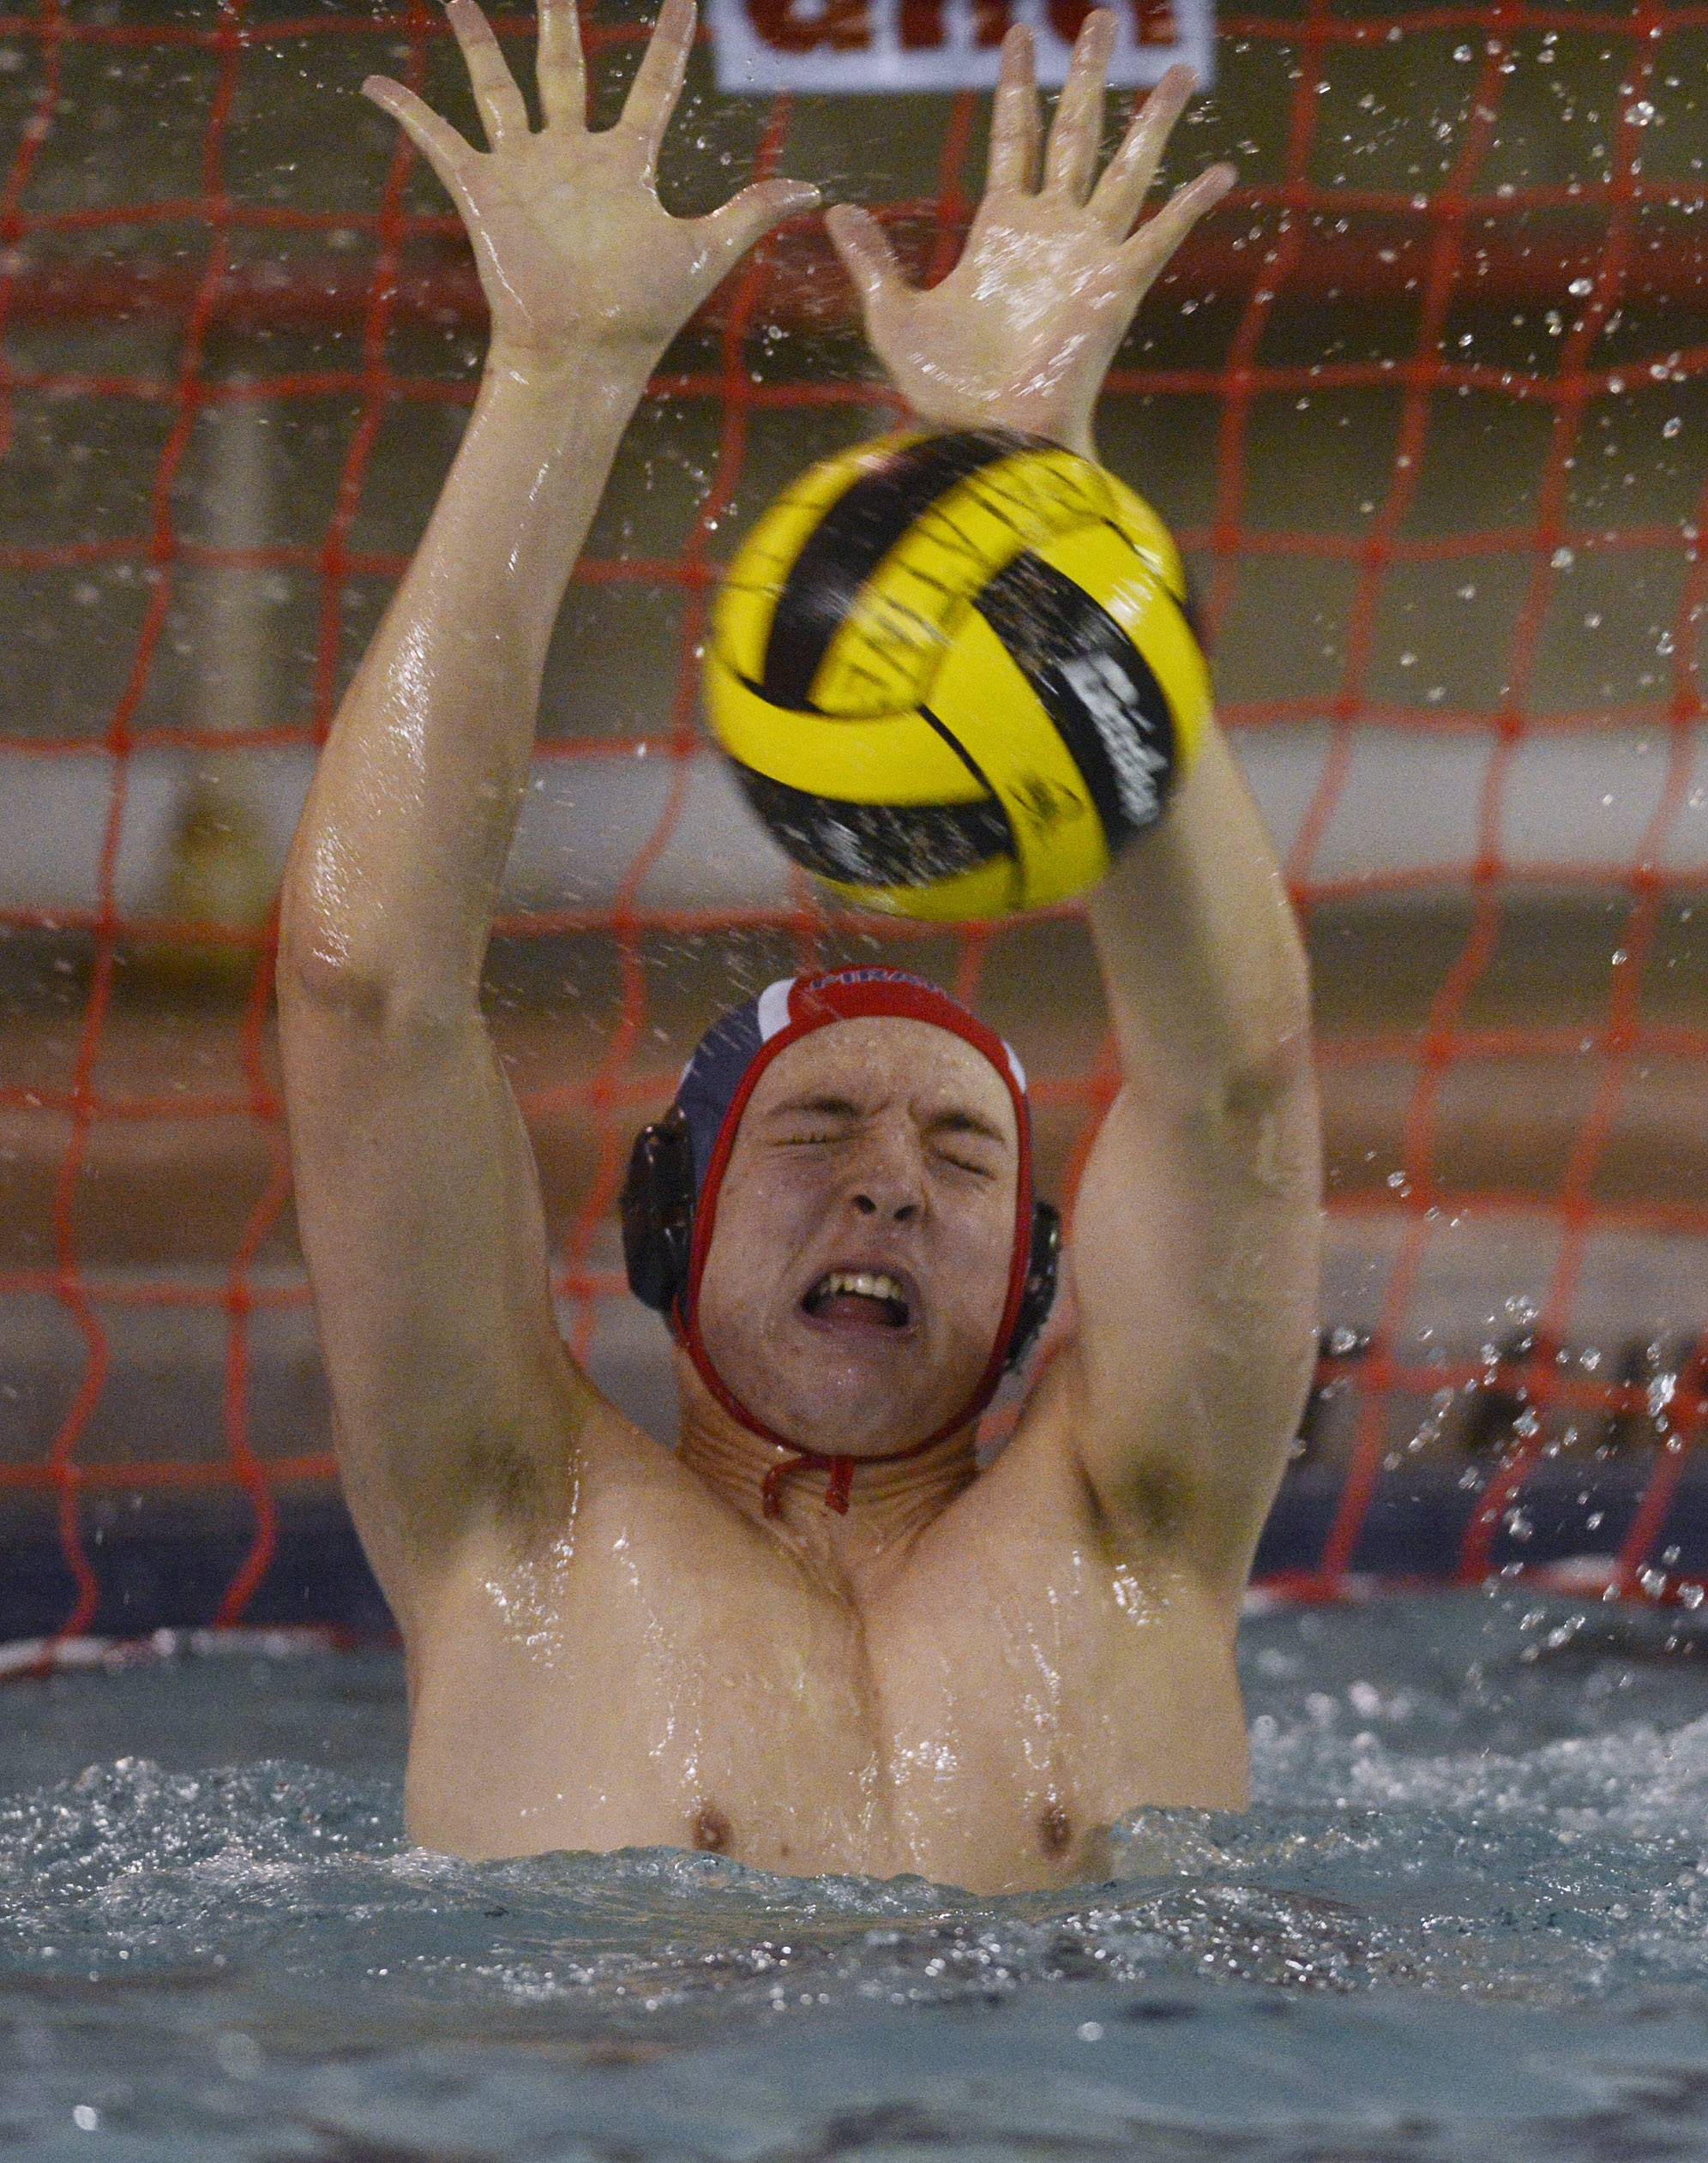 Palatine goalie Colin White makes a save on a shot by McHenry during Saturday's water polo tournament at Palatine.